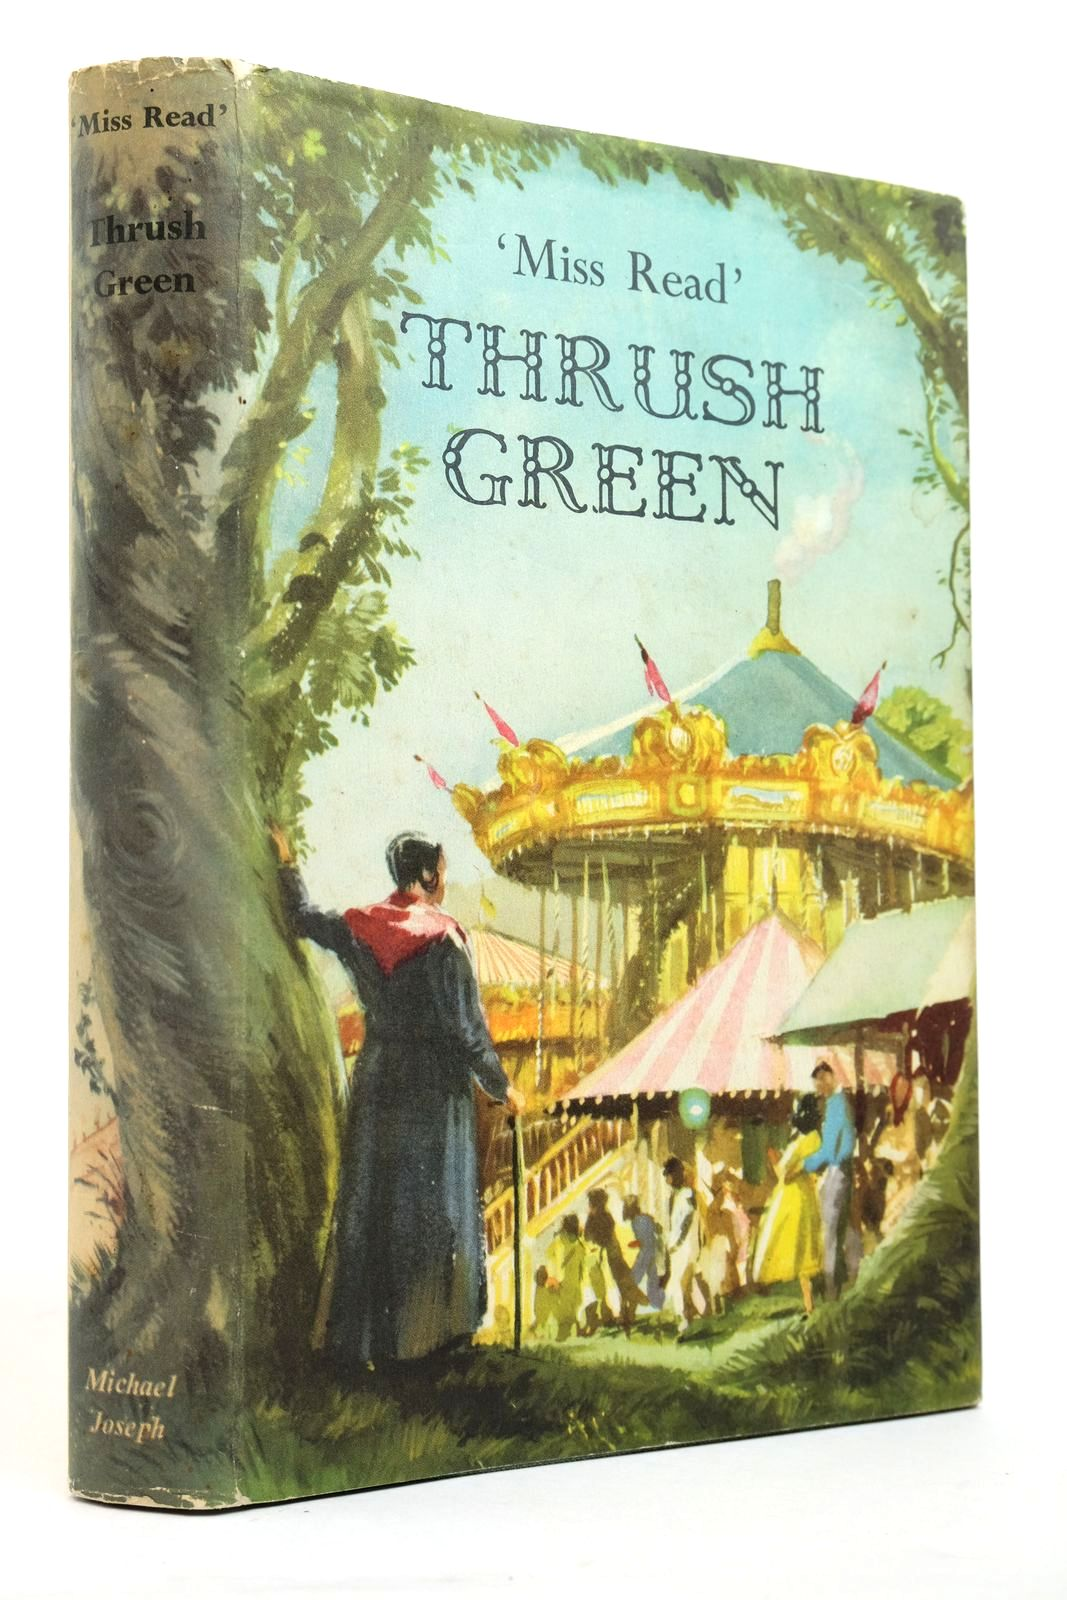 Photo of THRUSH GREEN written by Read, Miss illustrated by Goodall, John S. published by Michael Joseph (STOCK CODE: 2134682)  for sale by Stella & Rose's Books